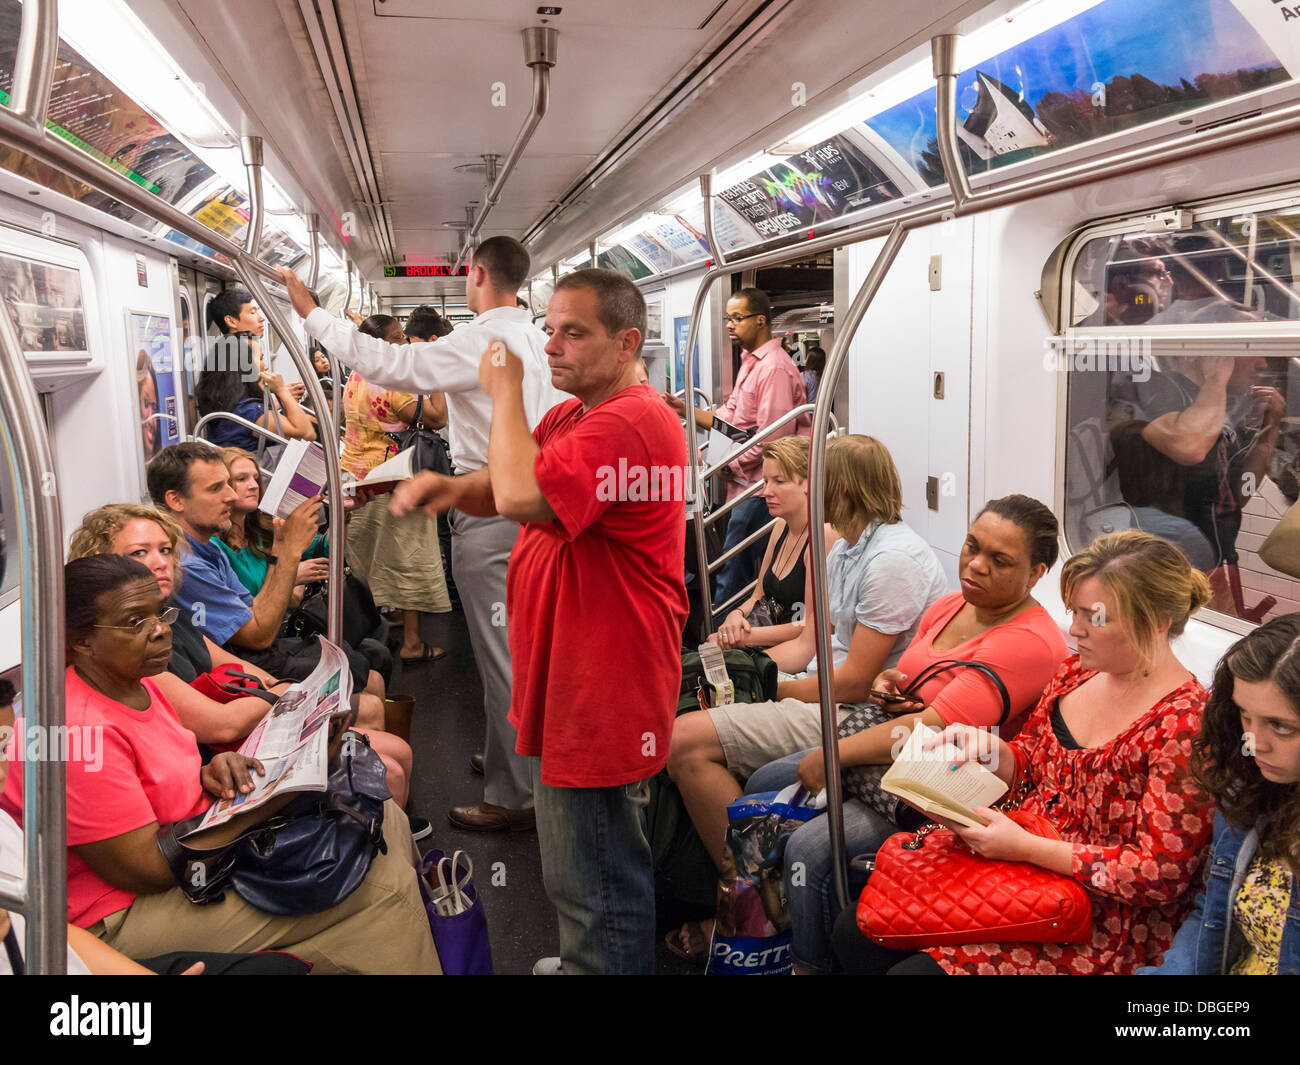 New York Subway - People on a crowed train on the New York City NYC subway at rush hour. - Stock Image